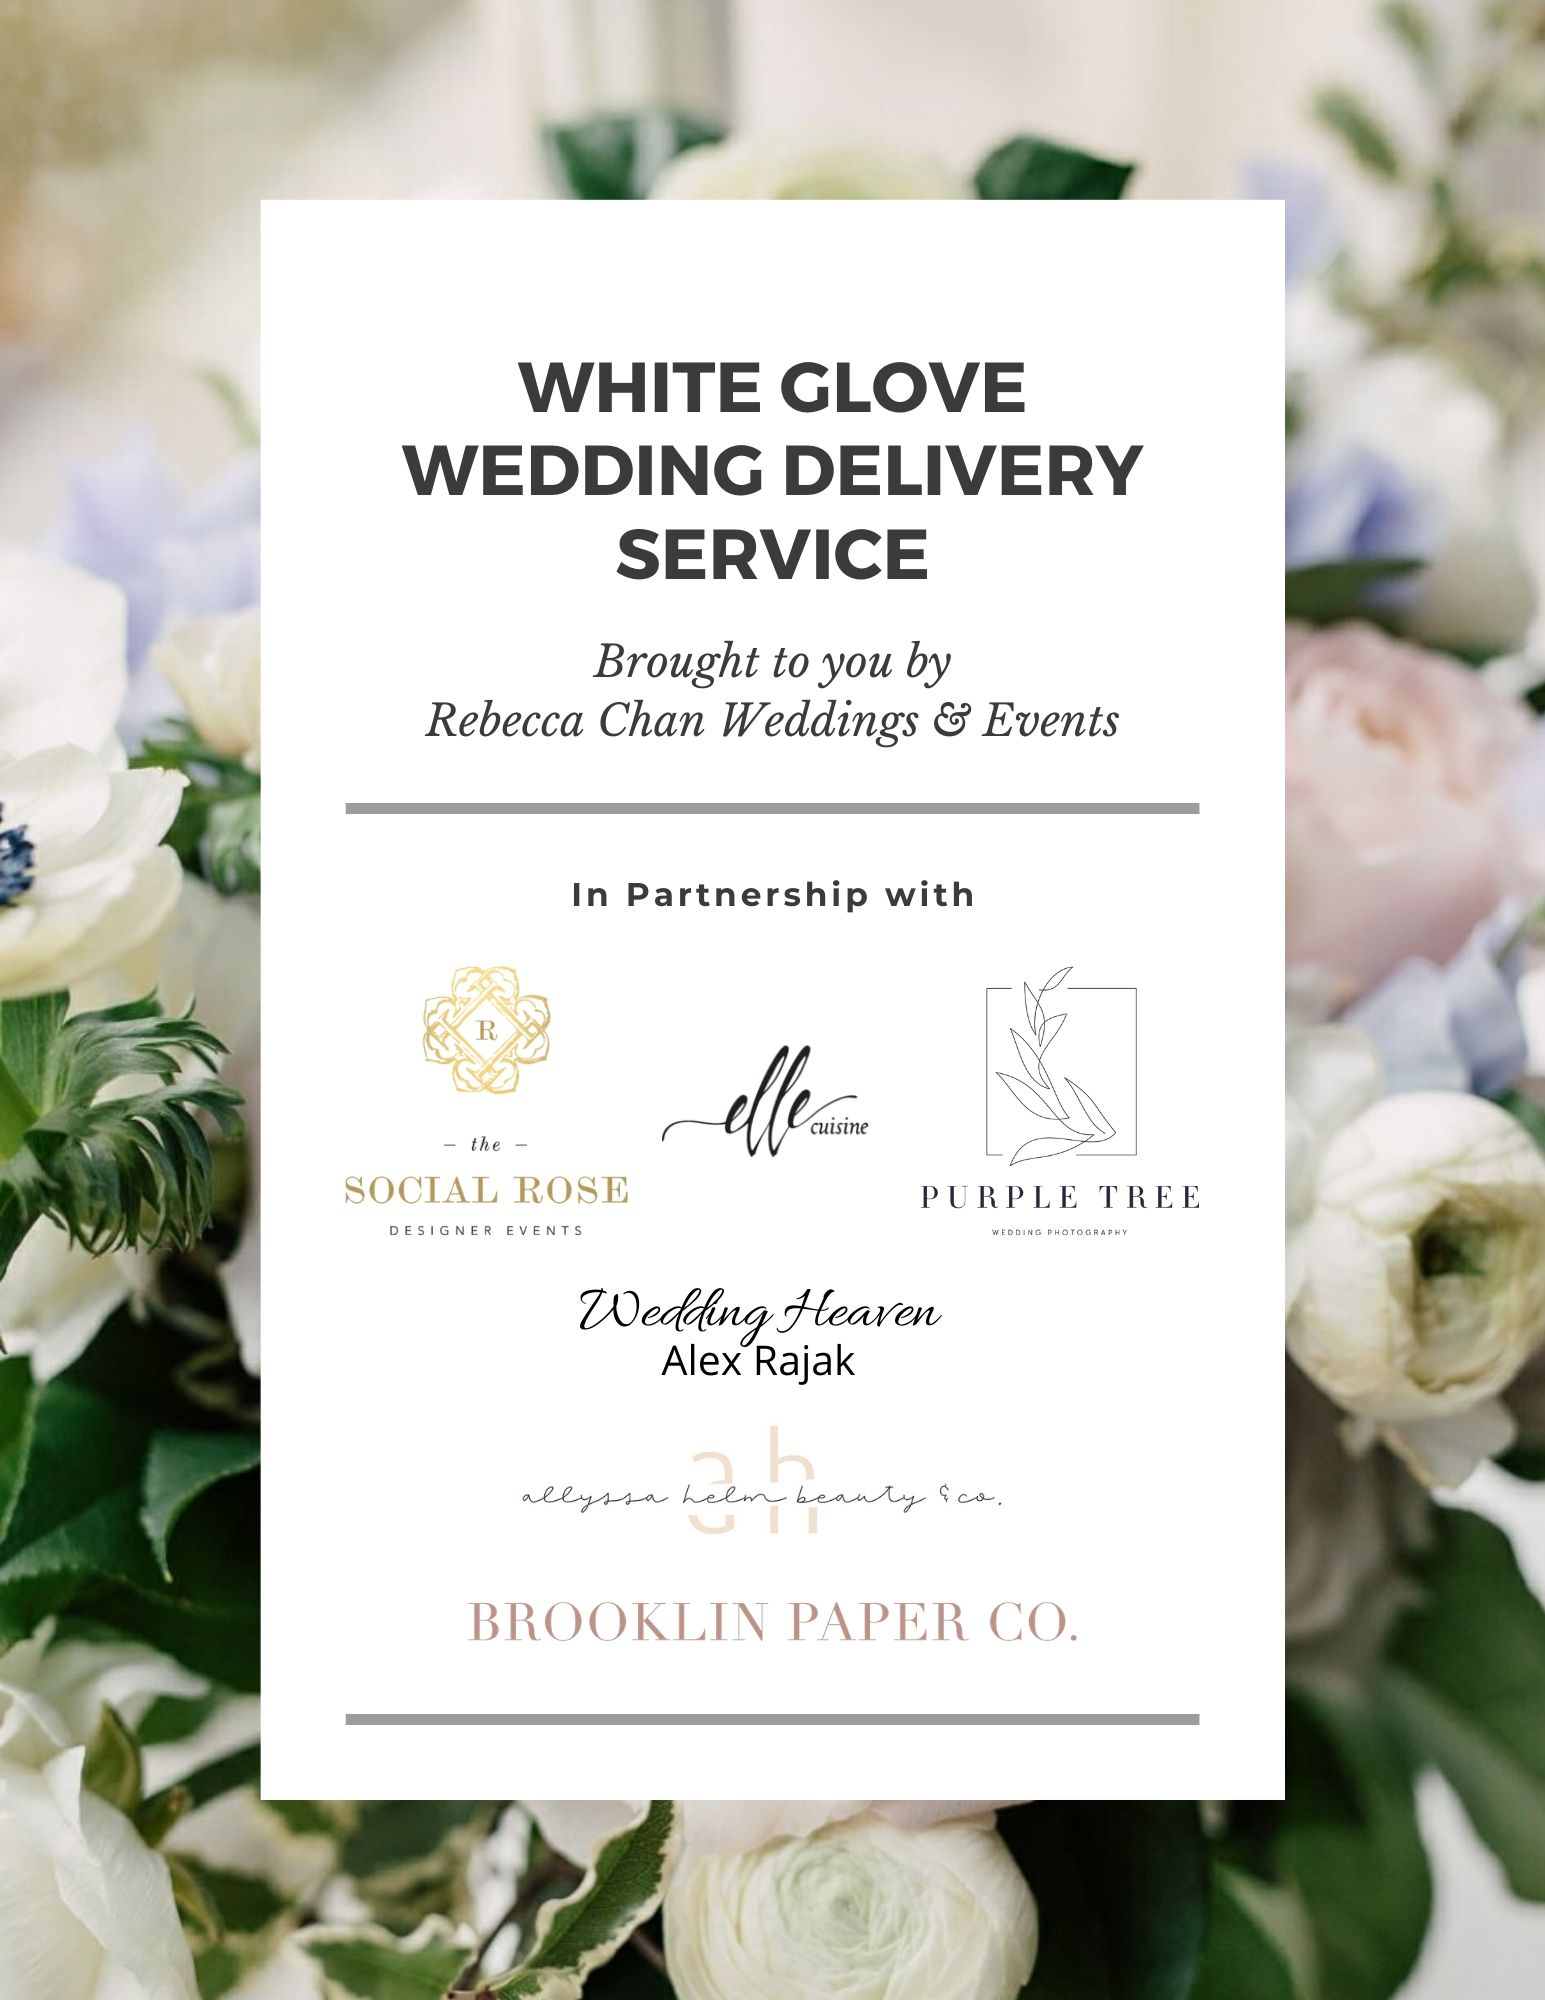 White-Glove-Wedding-Delivery-Service